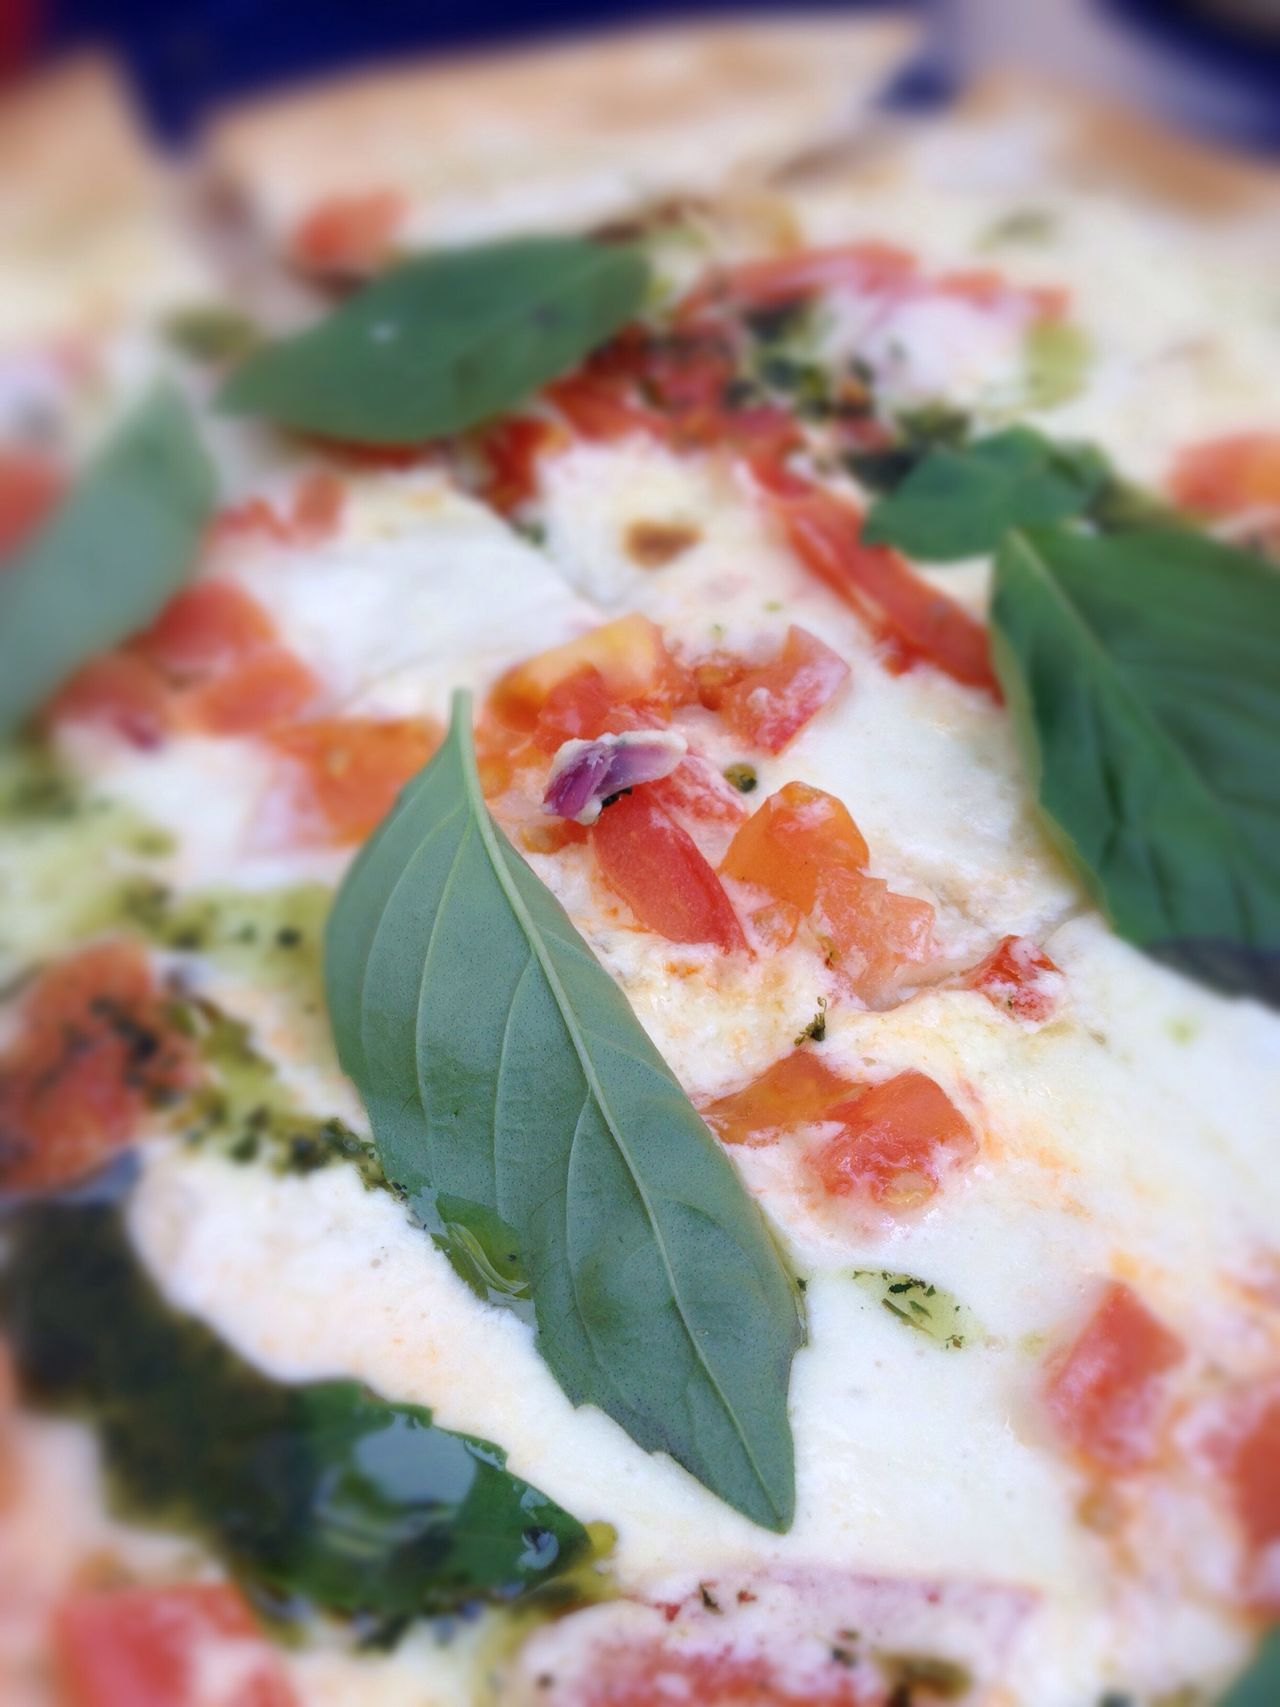 Tarte Flambee Flammkuchen Food And Drink Food Ready-to-eat Close-up Depth Of Field